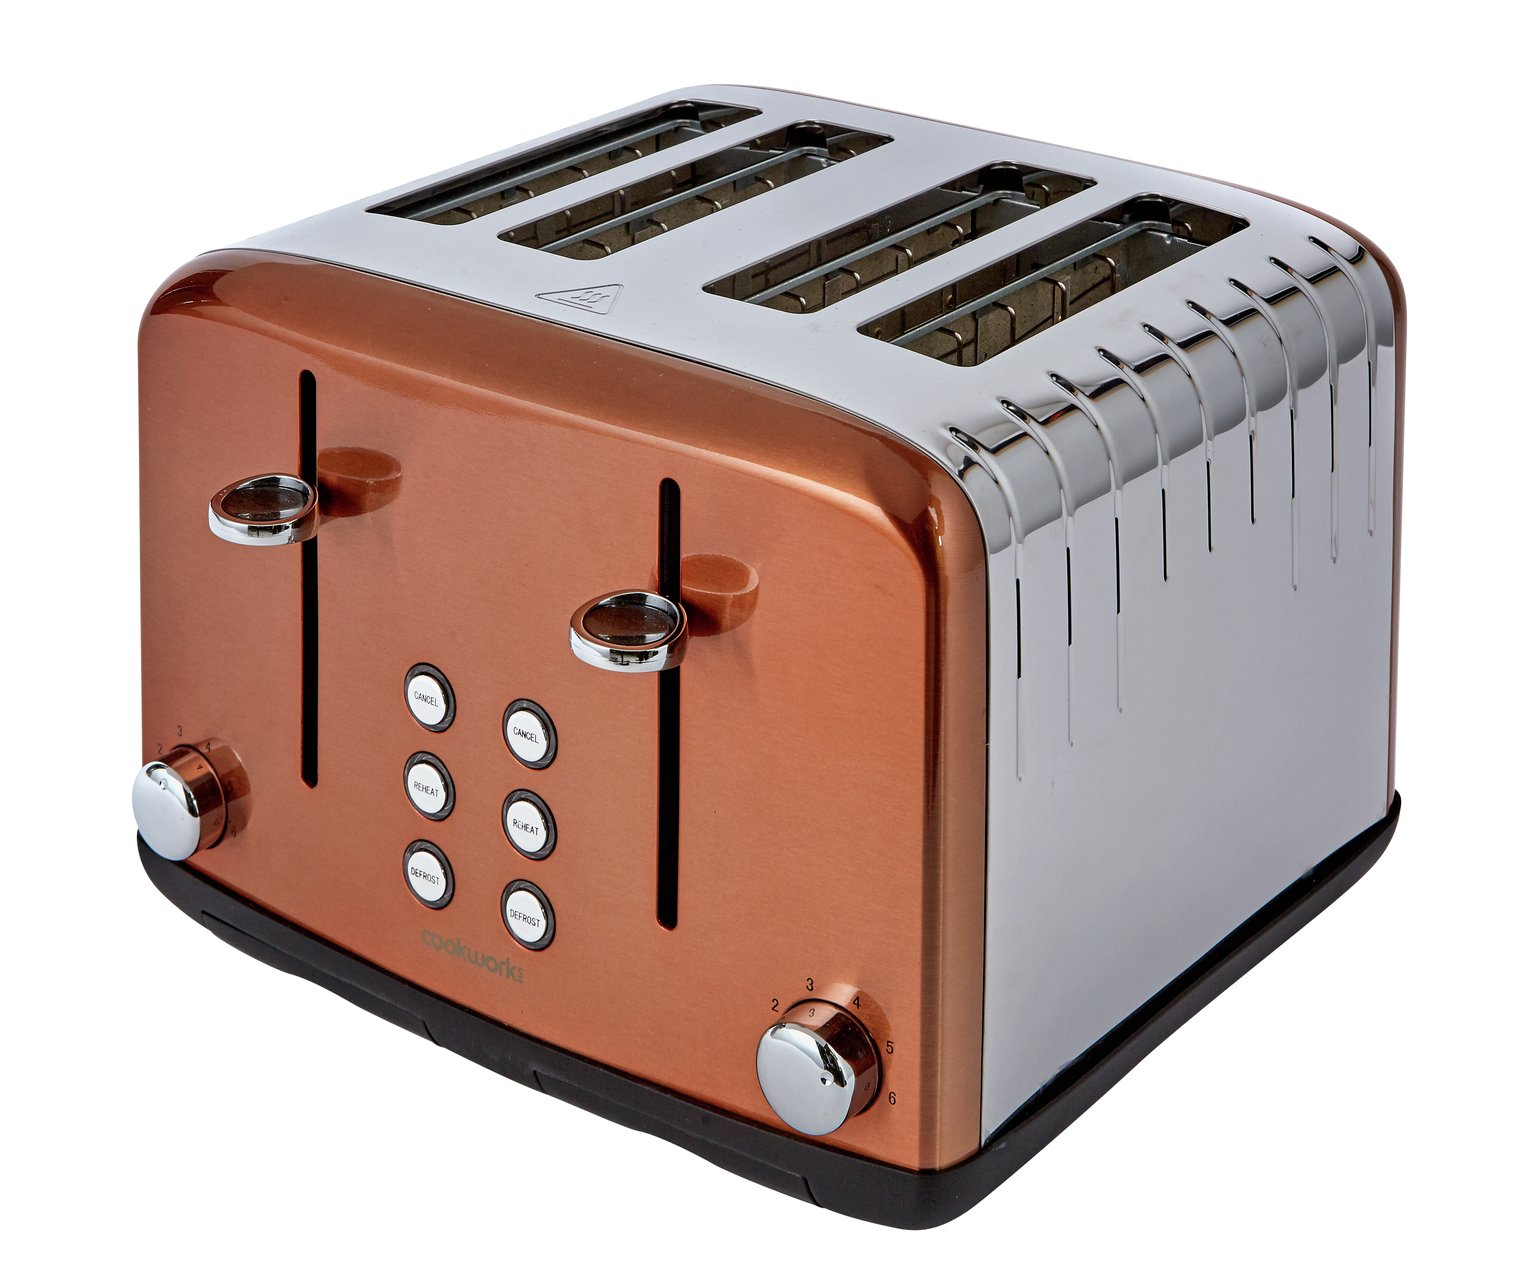 Cookworks Pyramid 4 Slice Toaster - Copper